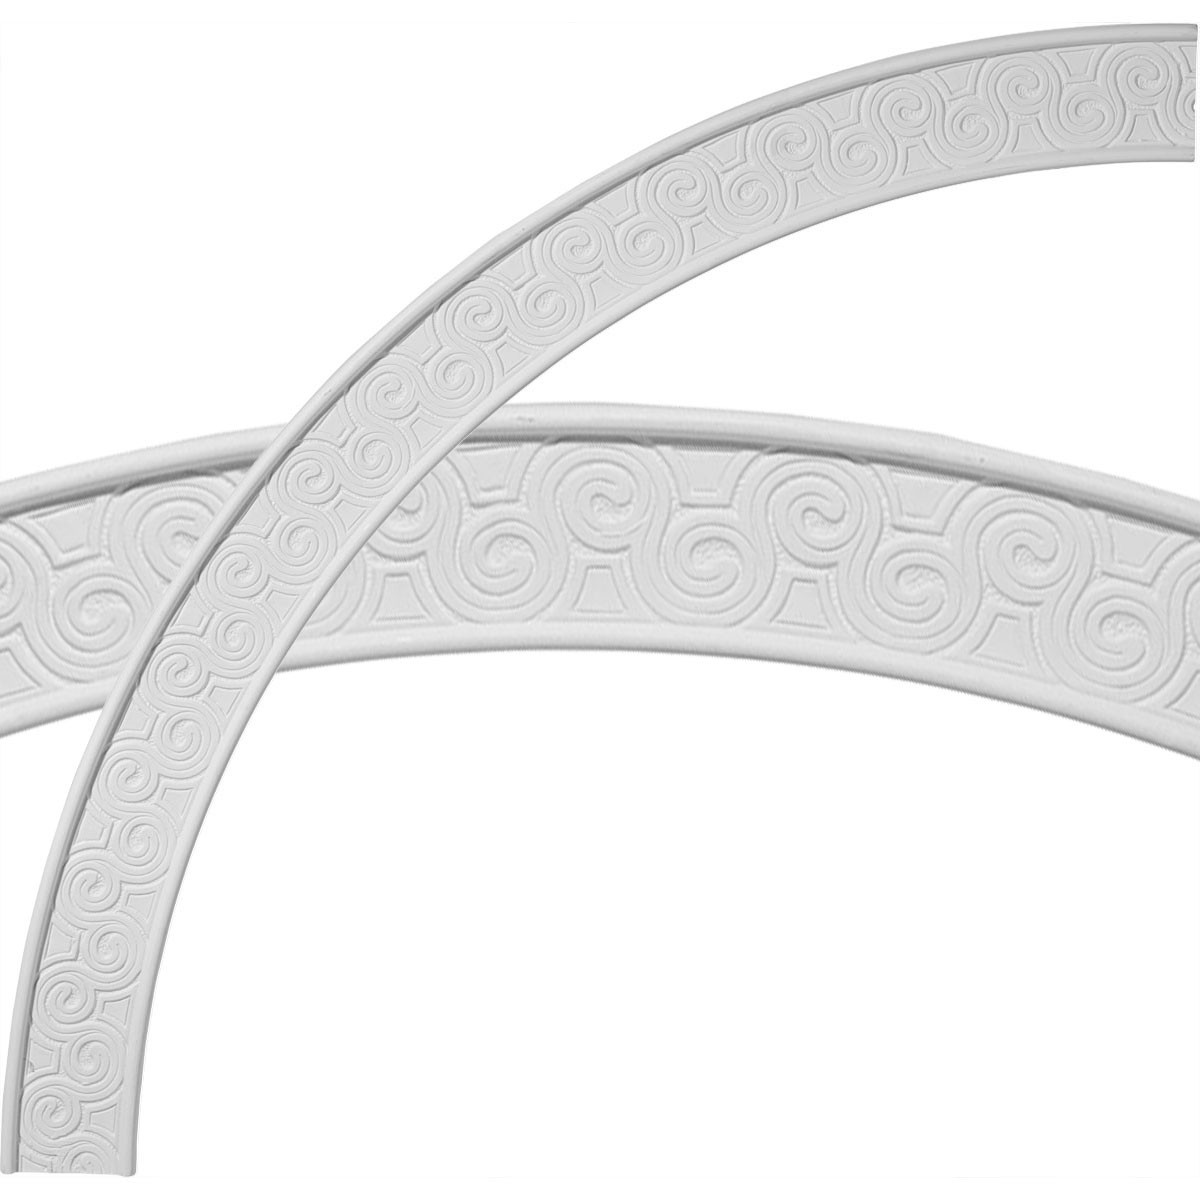 """EM-CR44BE - 44 1/2""""OD x 39 1/4""""ID x 2 3/4""""W x 5/8""""P Bedford Ceiling Ring (1/4 of complete circle)"""